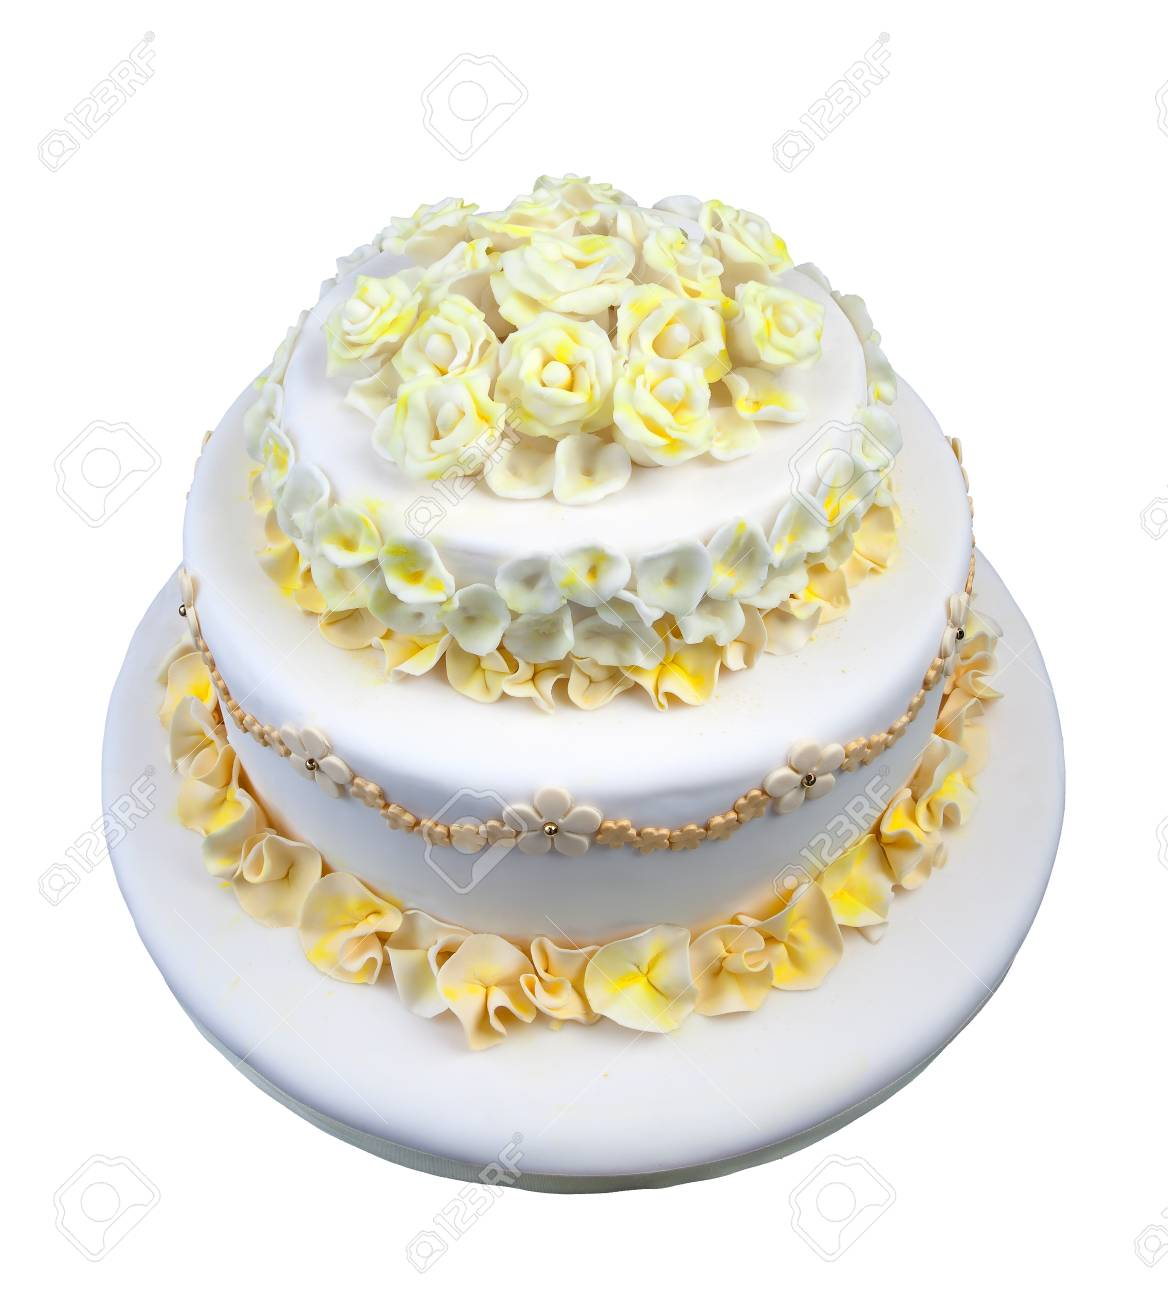 Wedding Cake With White And Yellow Flowers Isolated On White Stock ...